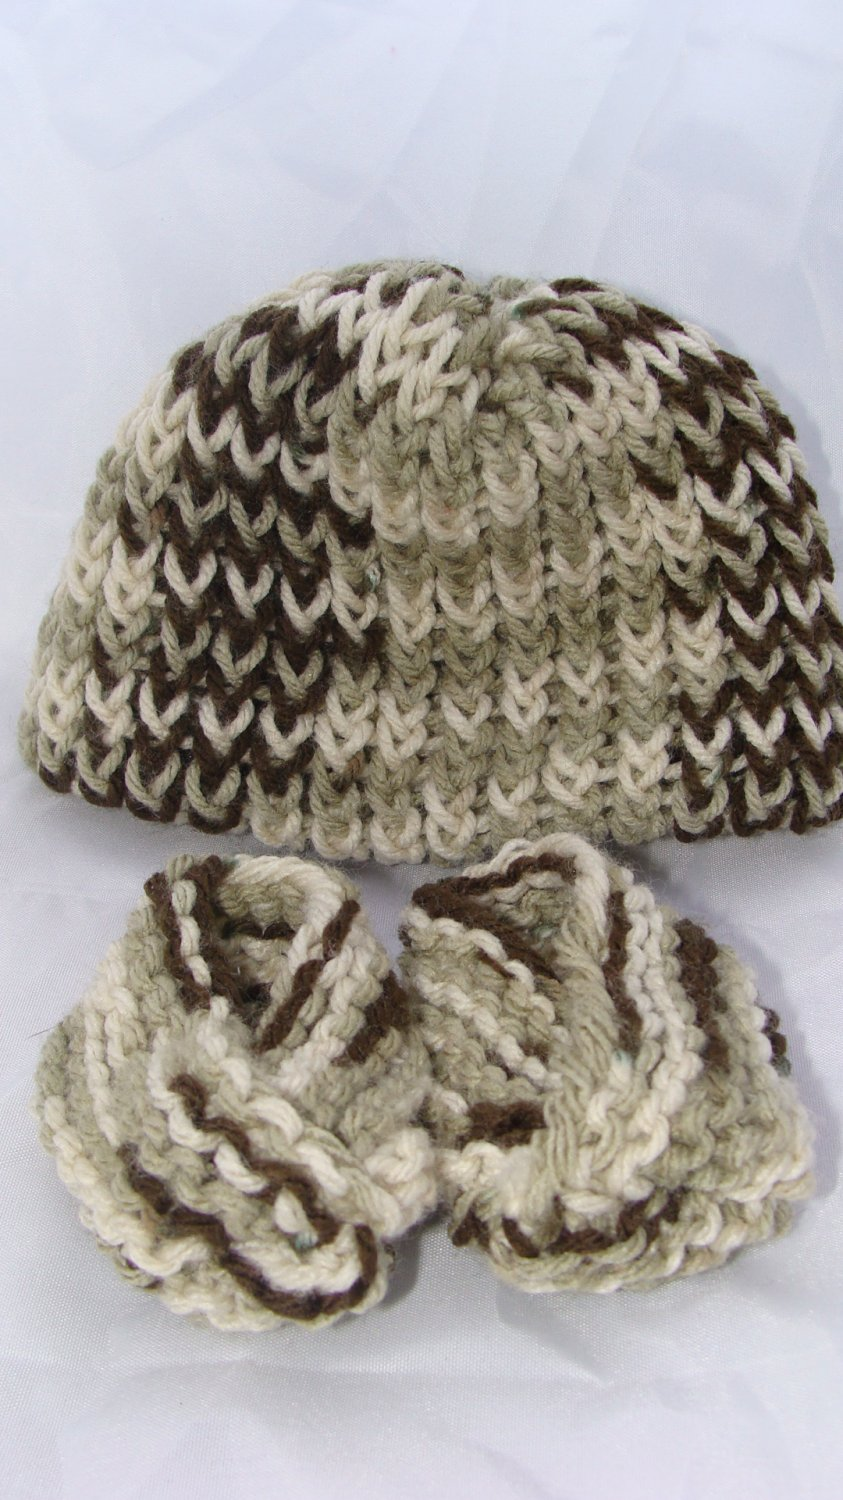 Brown baby booties and hat set